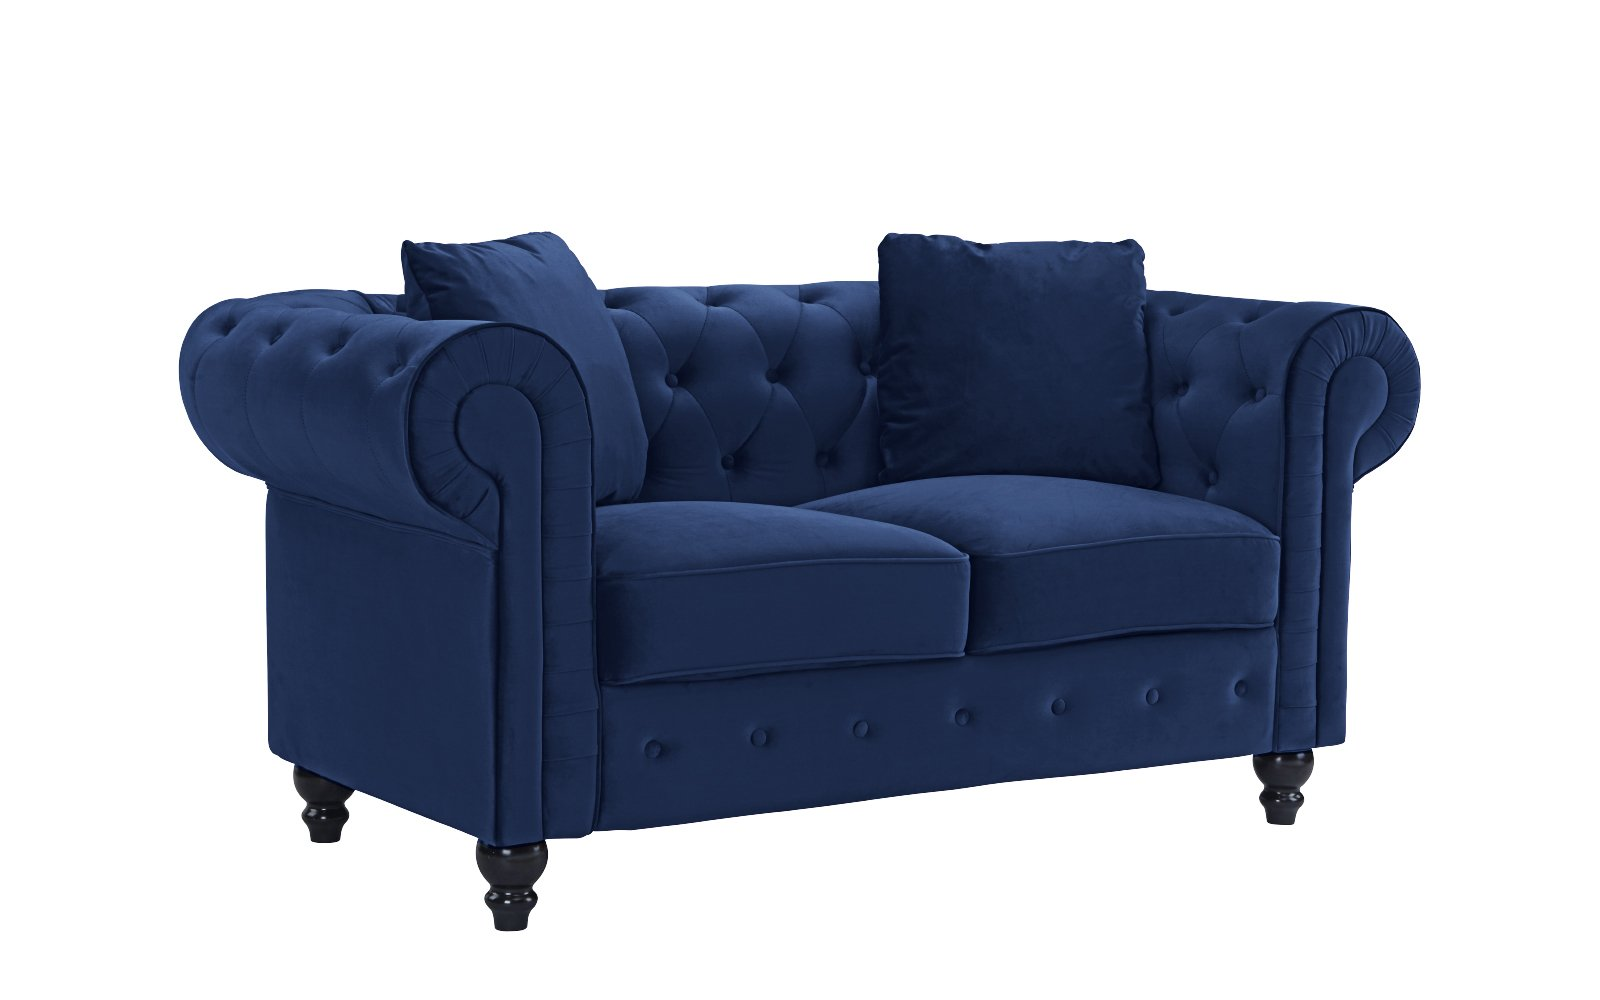 Furniture Classic Modern Scroll Arm Velvet Chesterfield Love Seat Sofa (Blue) - Ultra soft and comfortable chesterfield style love seat with tufted design for that classic and sophisticated look Premium velvet upholstery with overstuffed arms and back rests for comfort, tufted plush arm rests Removable seat cushions with velcro attached to avoid sliding, Victorian style wooden legs. - sofas-couches, living-room-furniture, living-room - 61PNVEUbhKL -